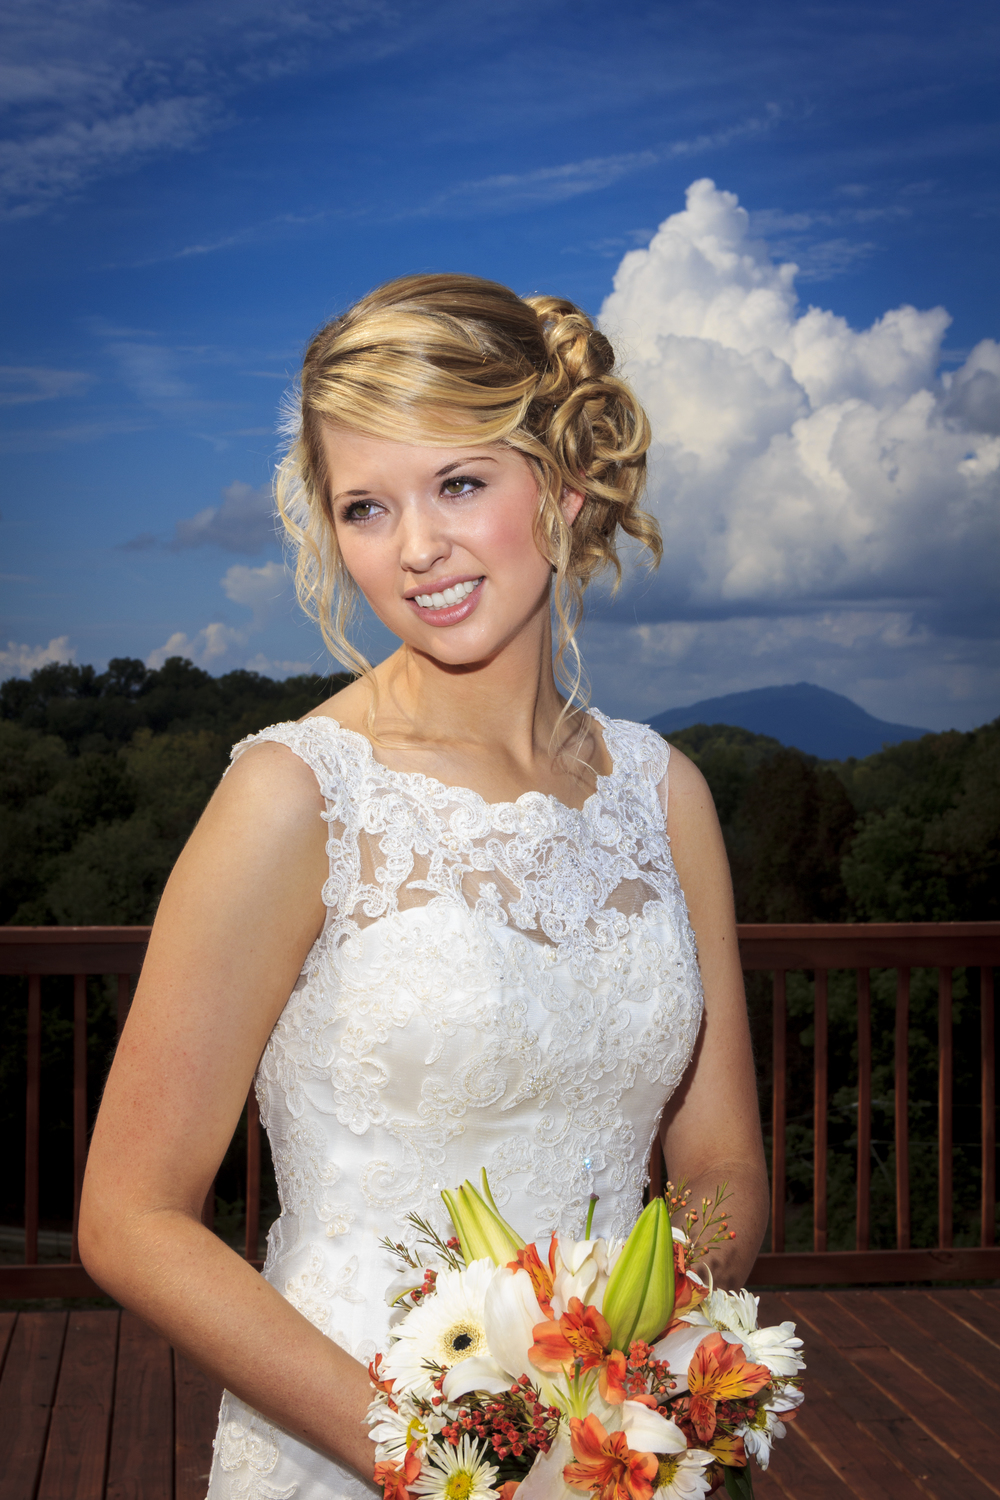 bridal-photography-bluff-mountain.jpg